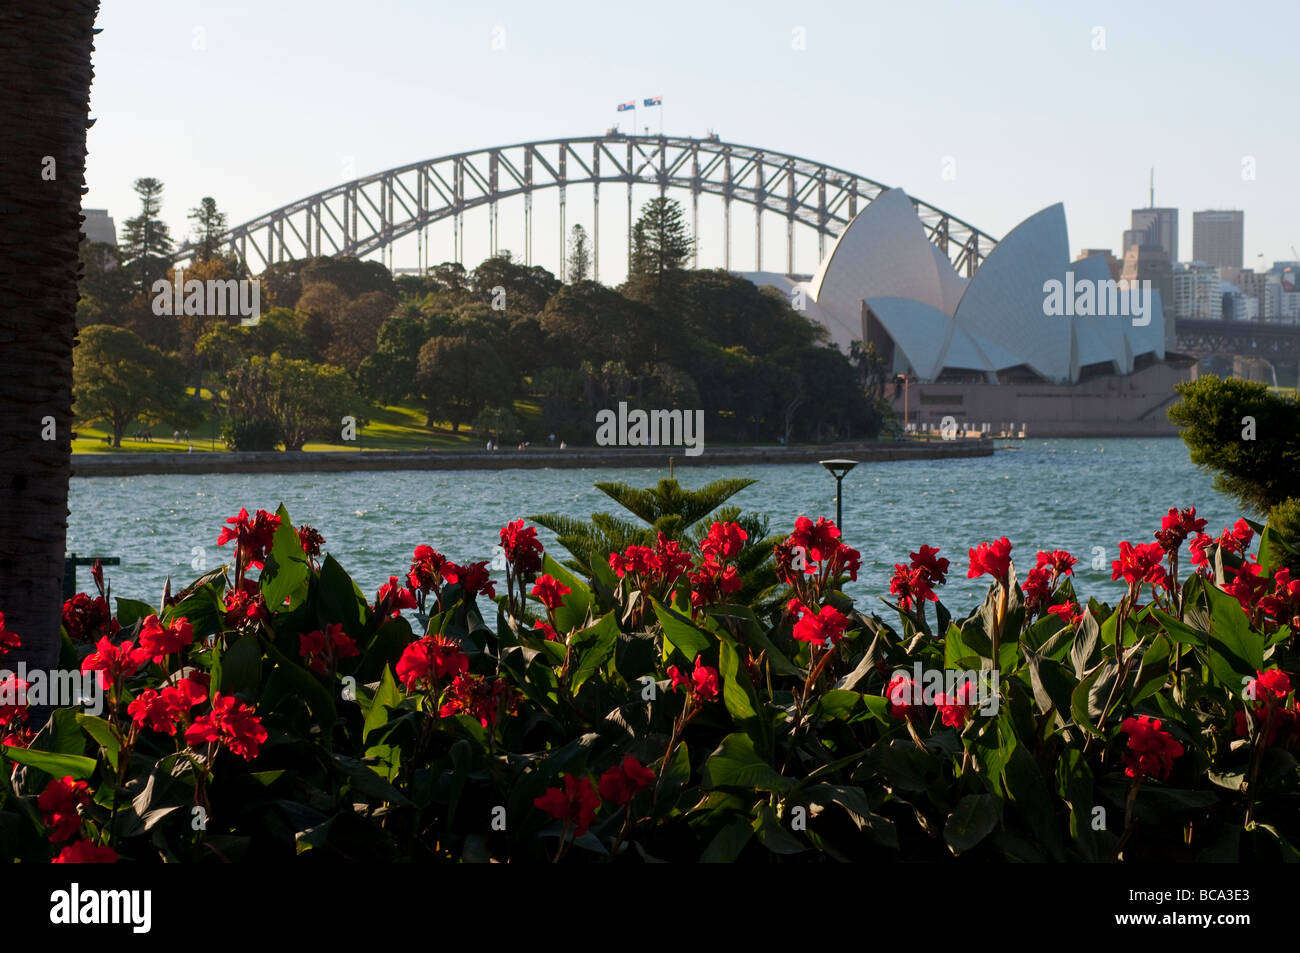 Harbour Bridge And Red Canna Flowers In Botanic Gardens, Sydney NSW  Australia